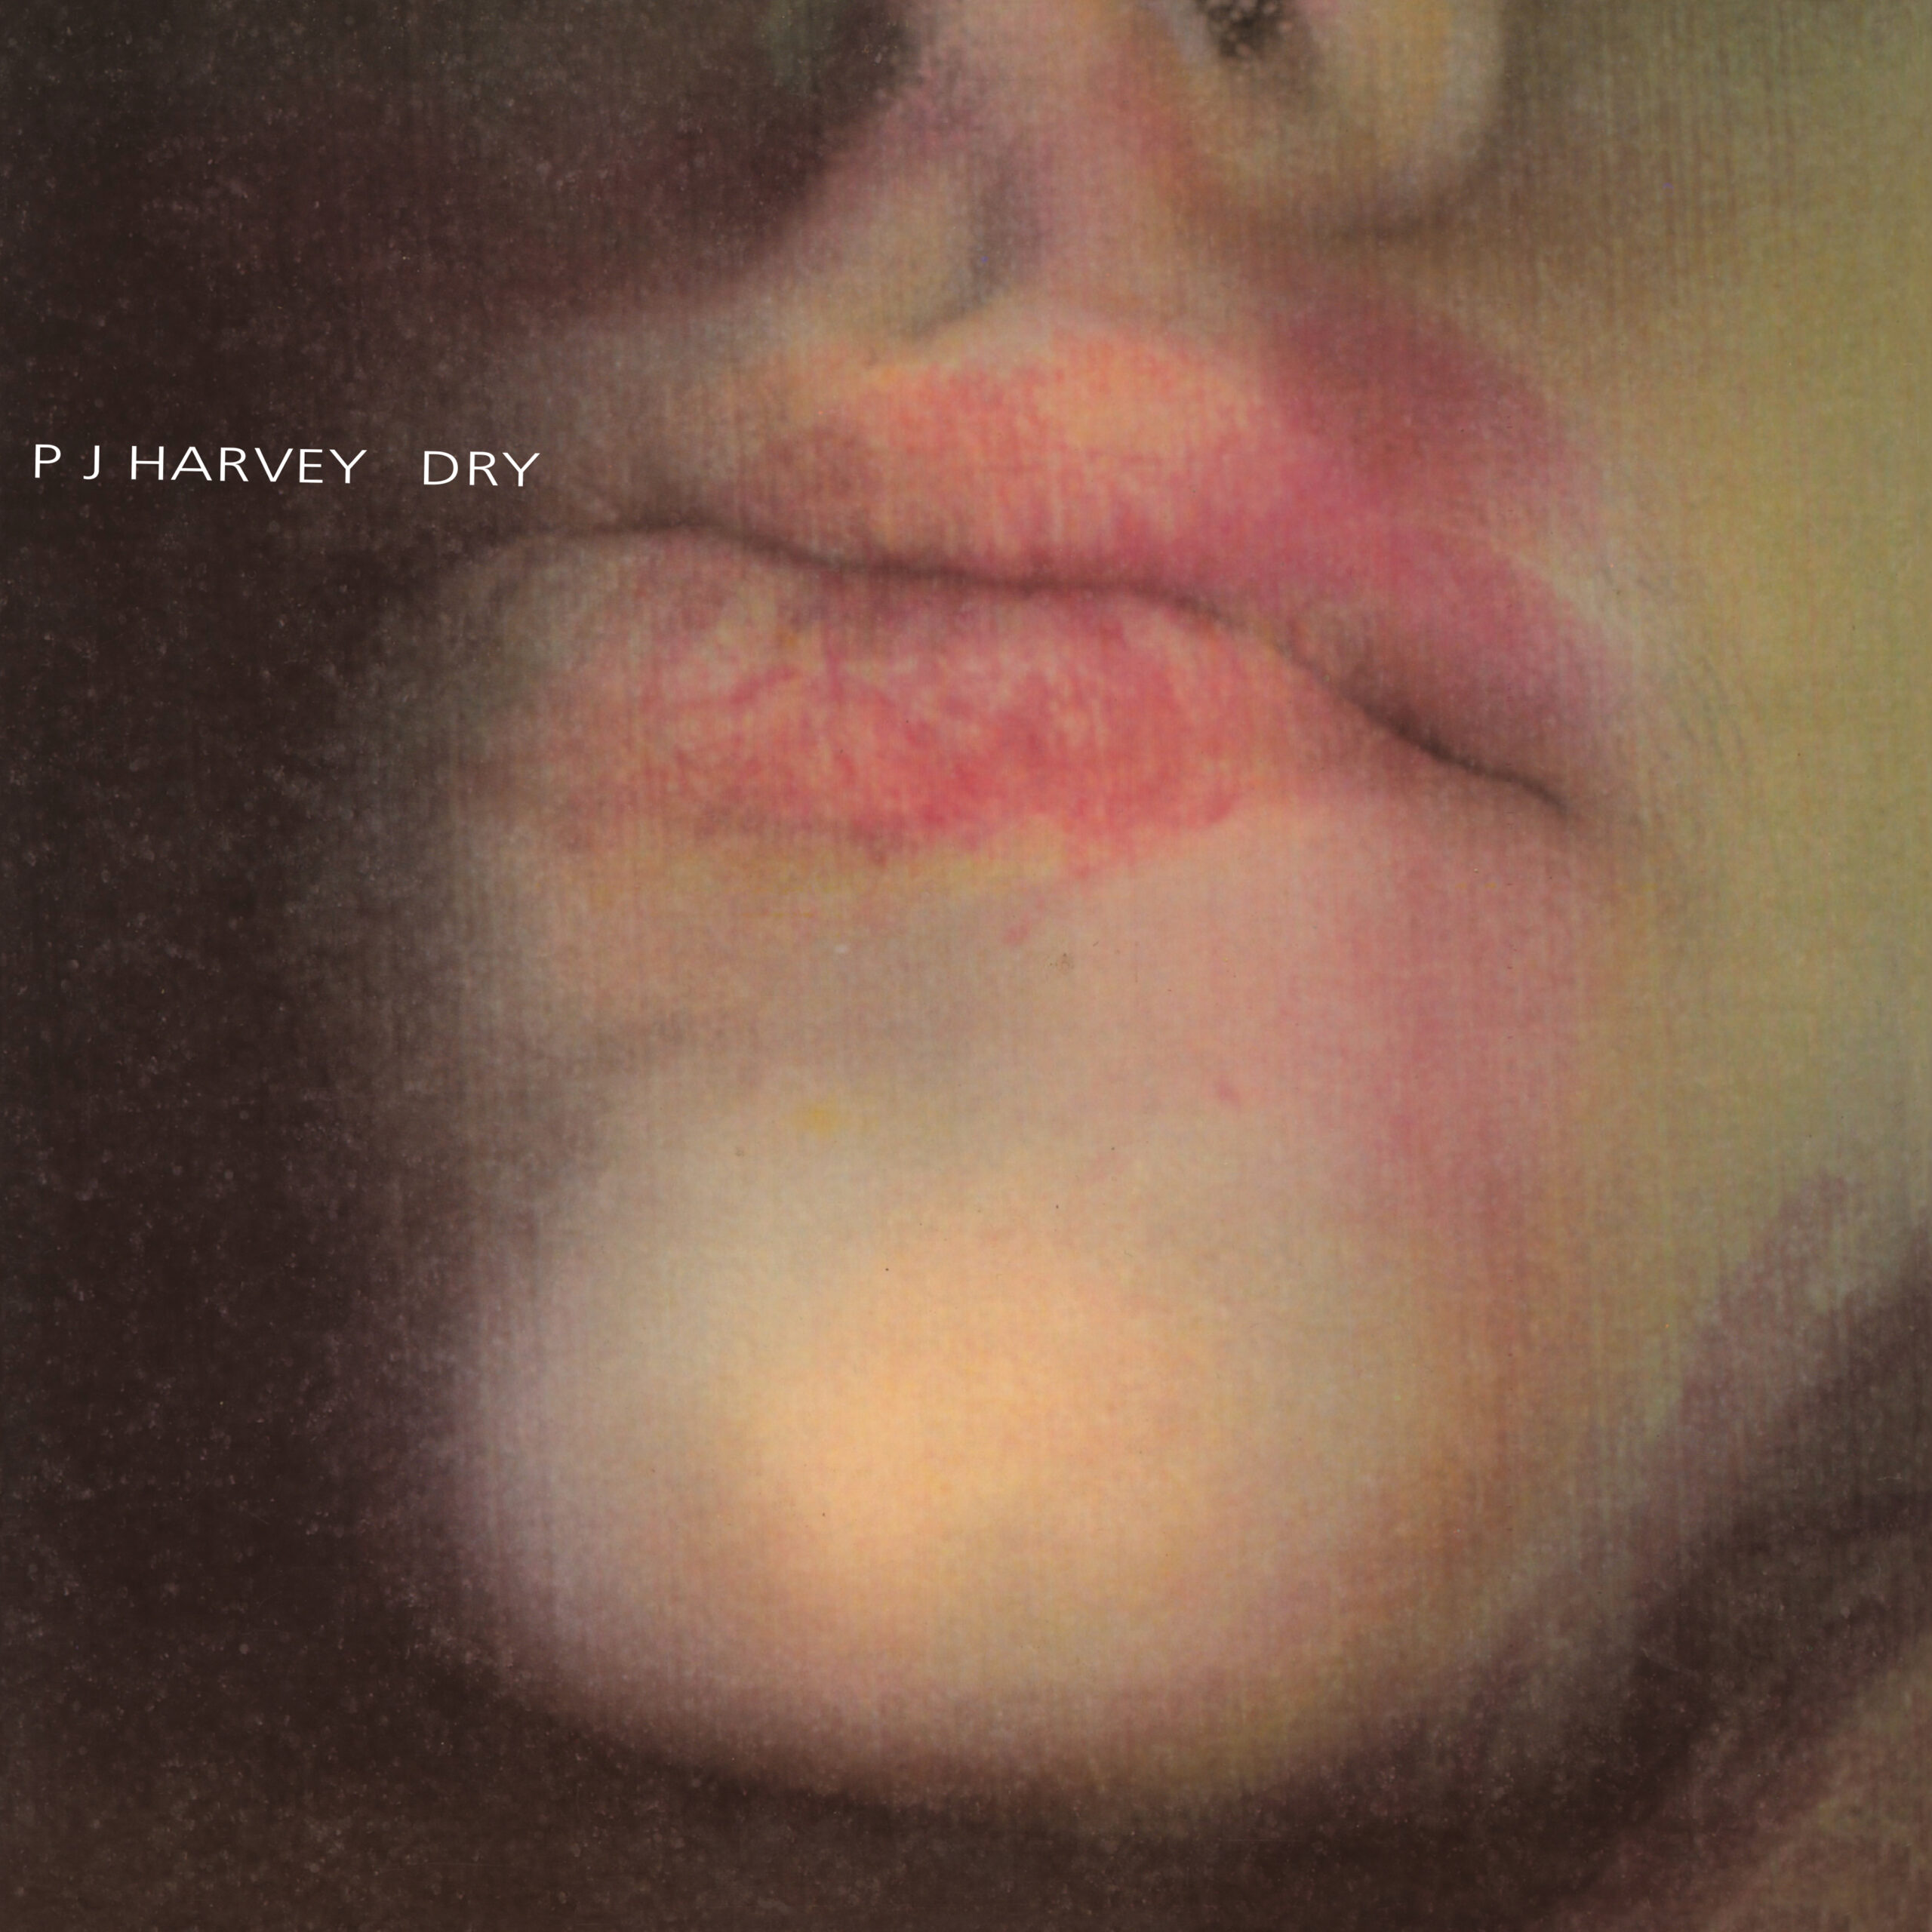 PJ HARVEY – Dry – LP – Vinyl [JULY 24th]